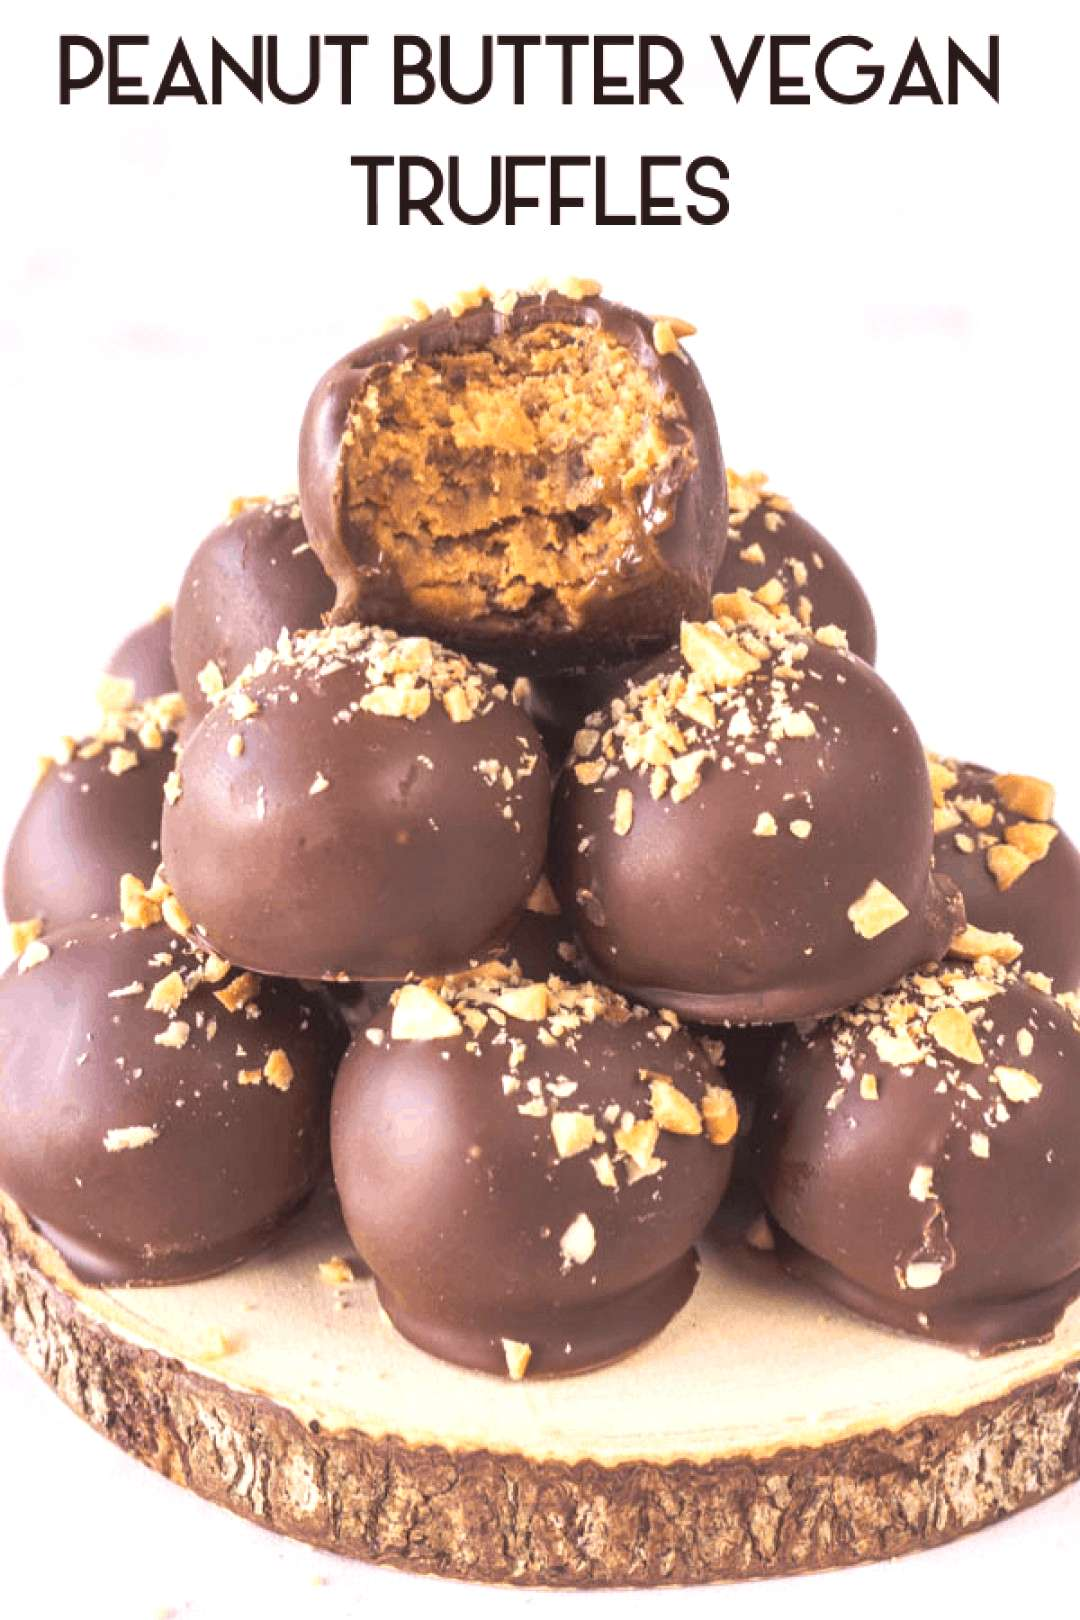 These Peanut Butter Vegan Truffles are paleo, gluten-free, refined sugar free, and absolutely addic